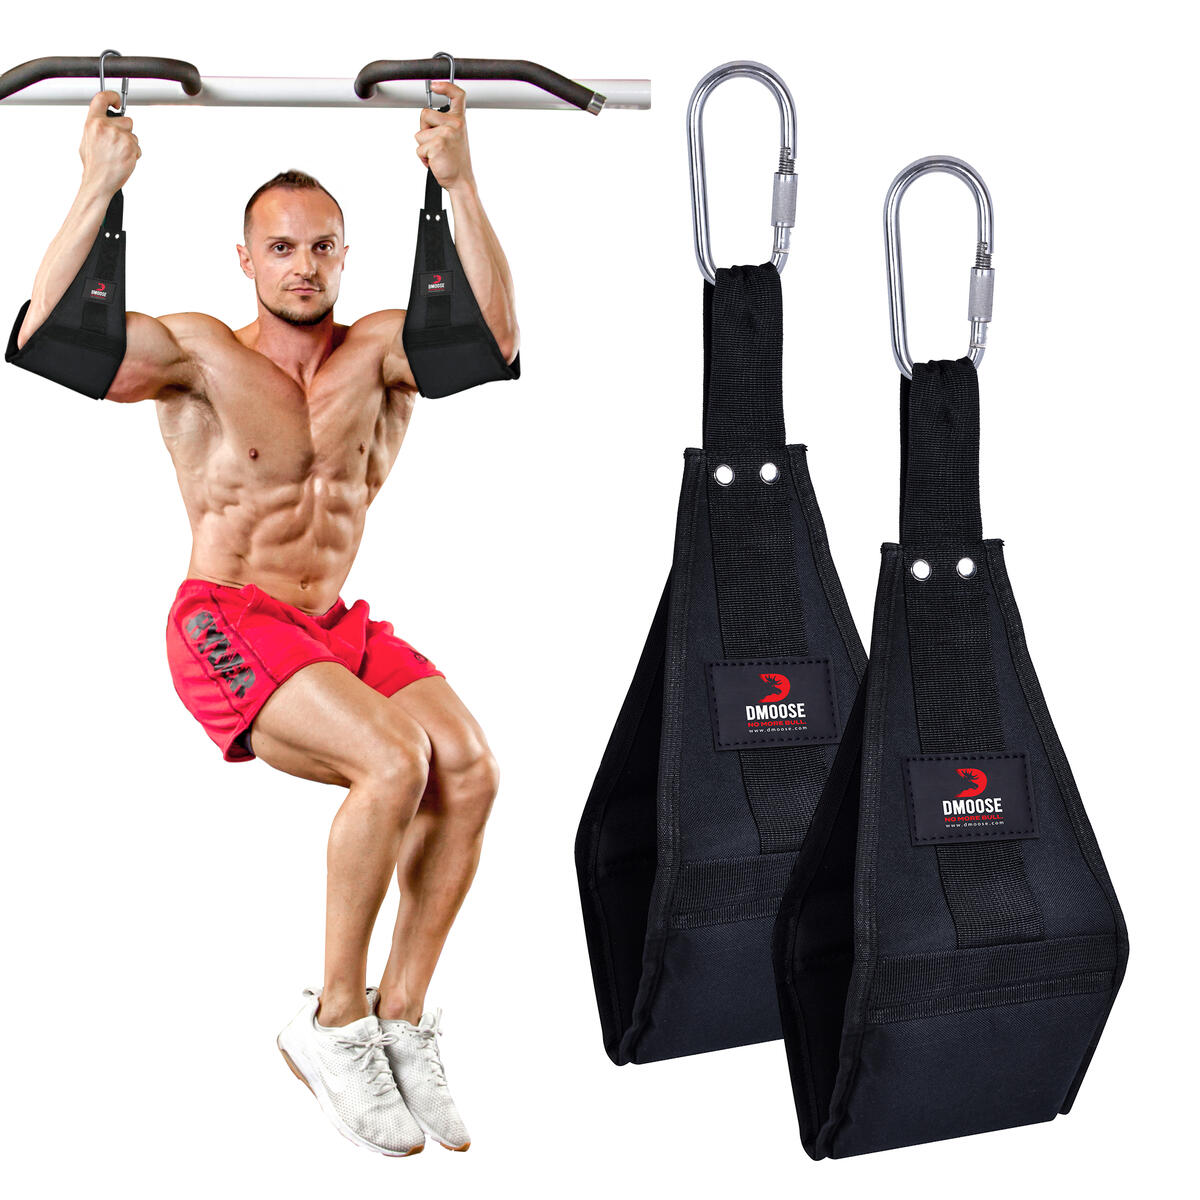 Premium Hanging Straps with Heavy Duty Carabiners for Abdominal Workout, For 6 pack abs